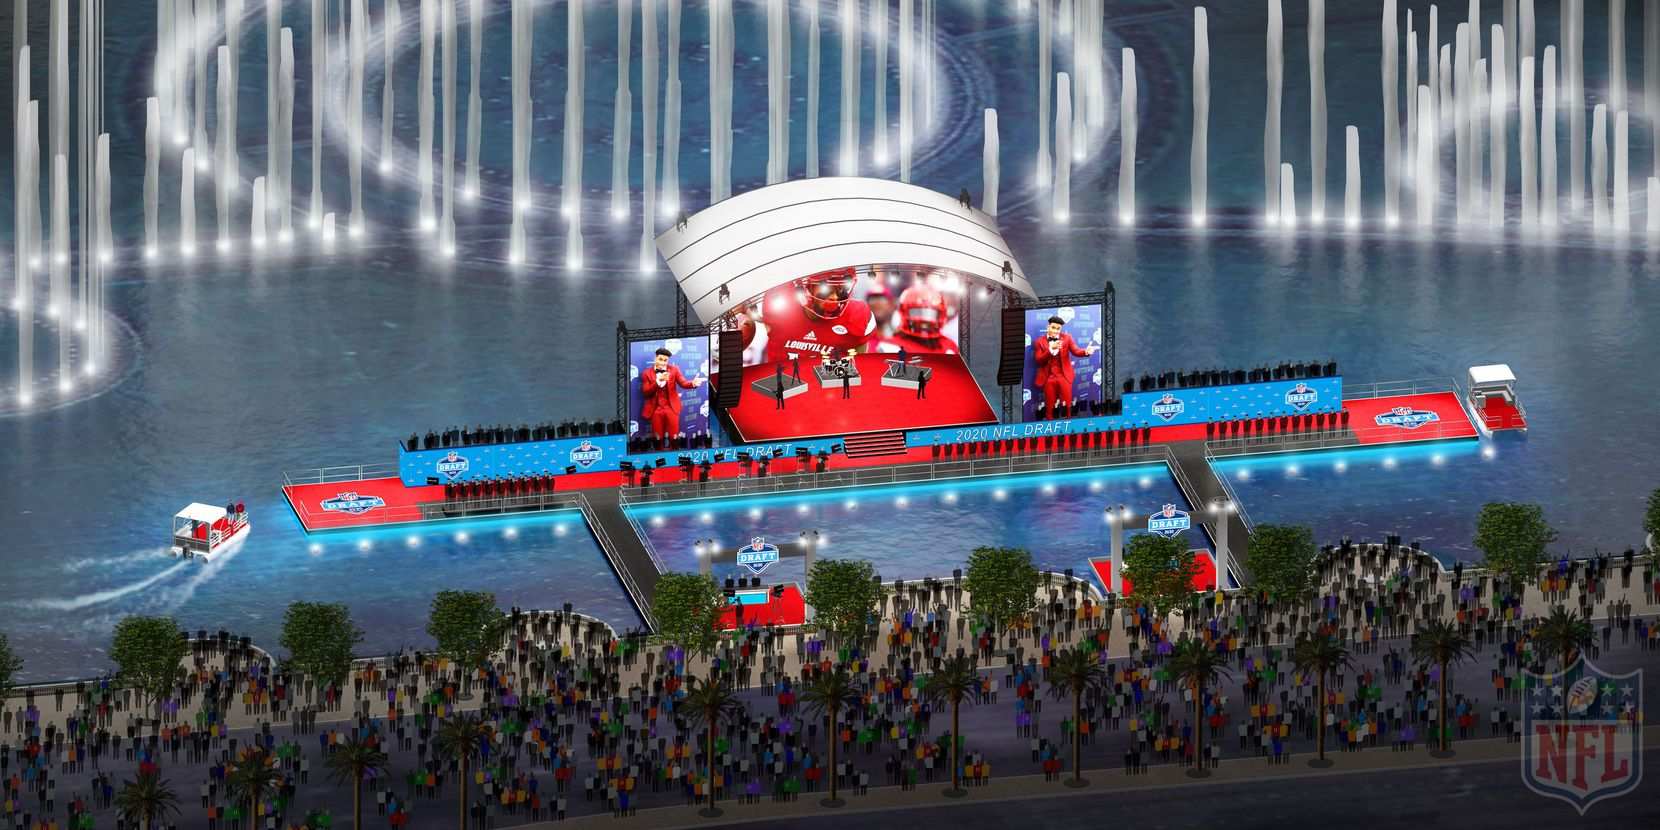 The 2020 NFL Draft's red carpet area will be built atop Lake Bellagio, with its famous dancing fountains in the background.